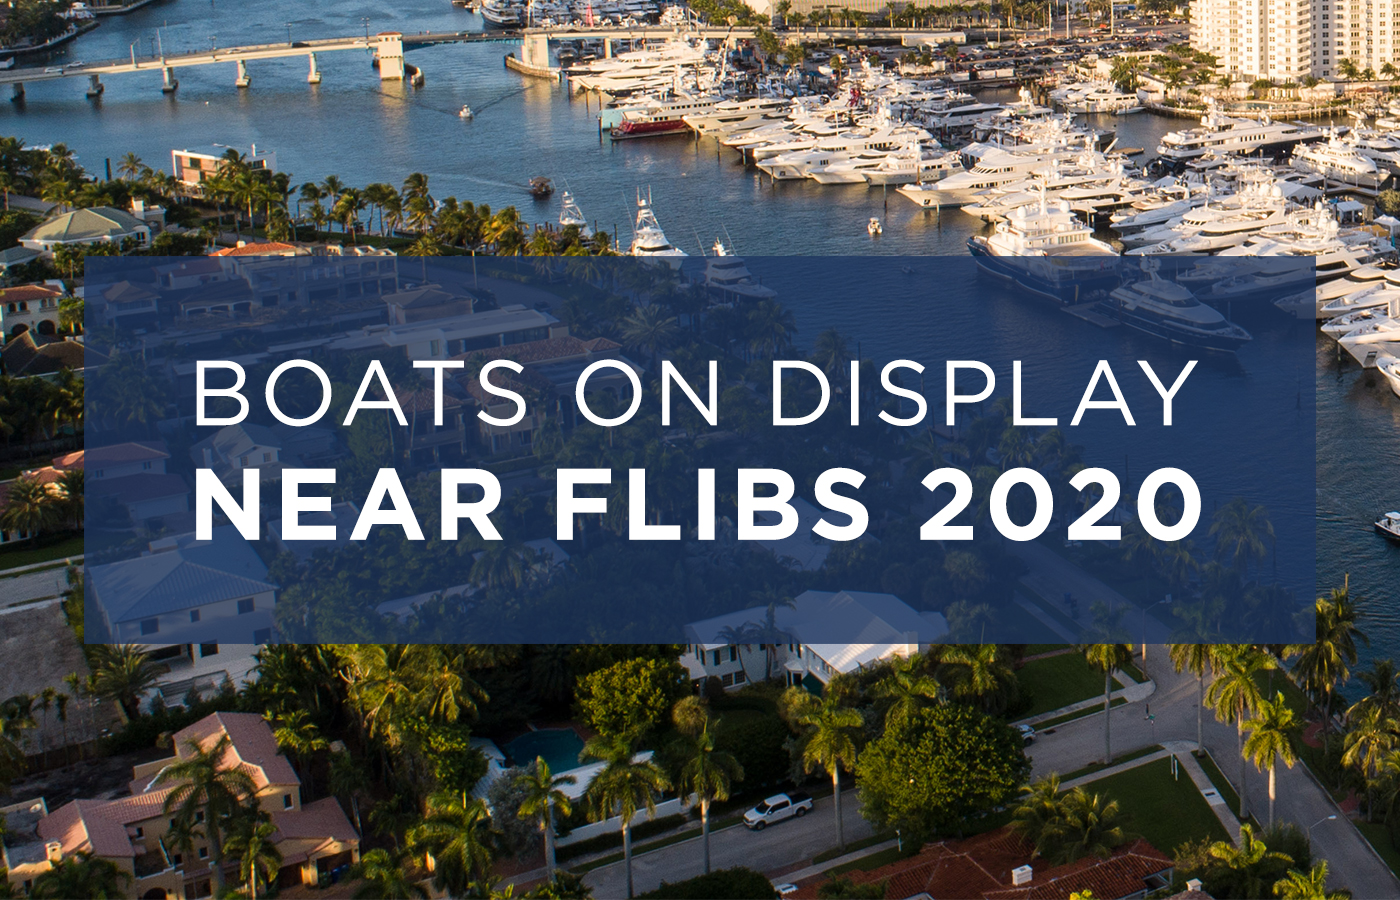 Boats Near The Fort Lauderdale Boat Show [FLIBS 2020]